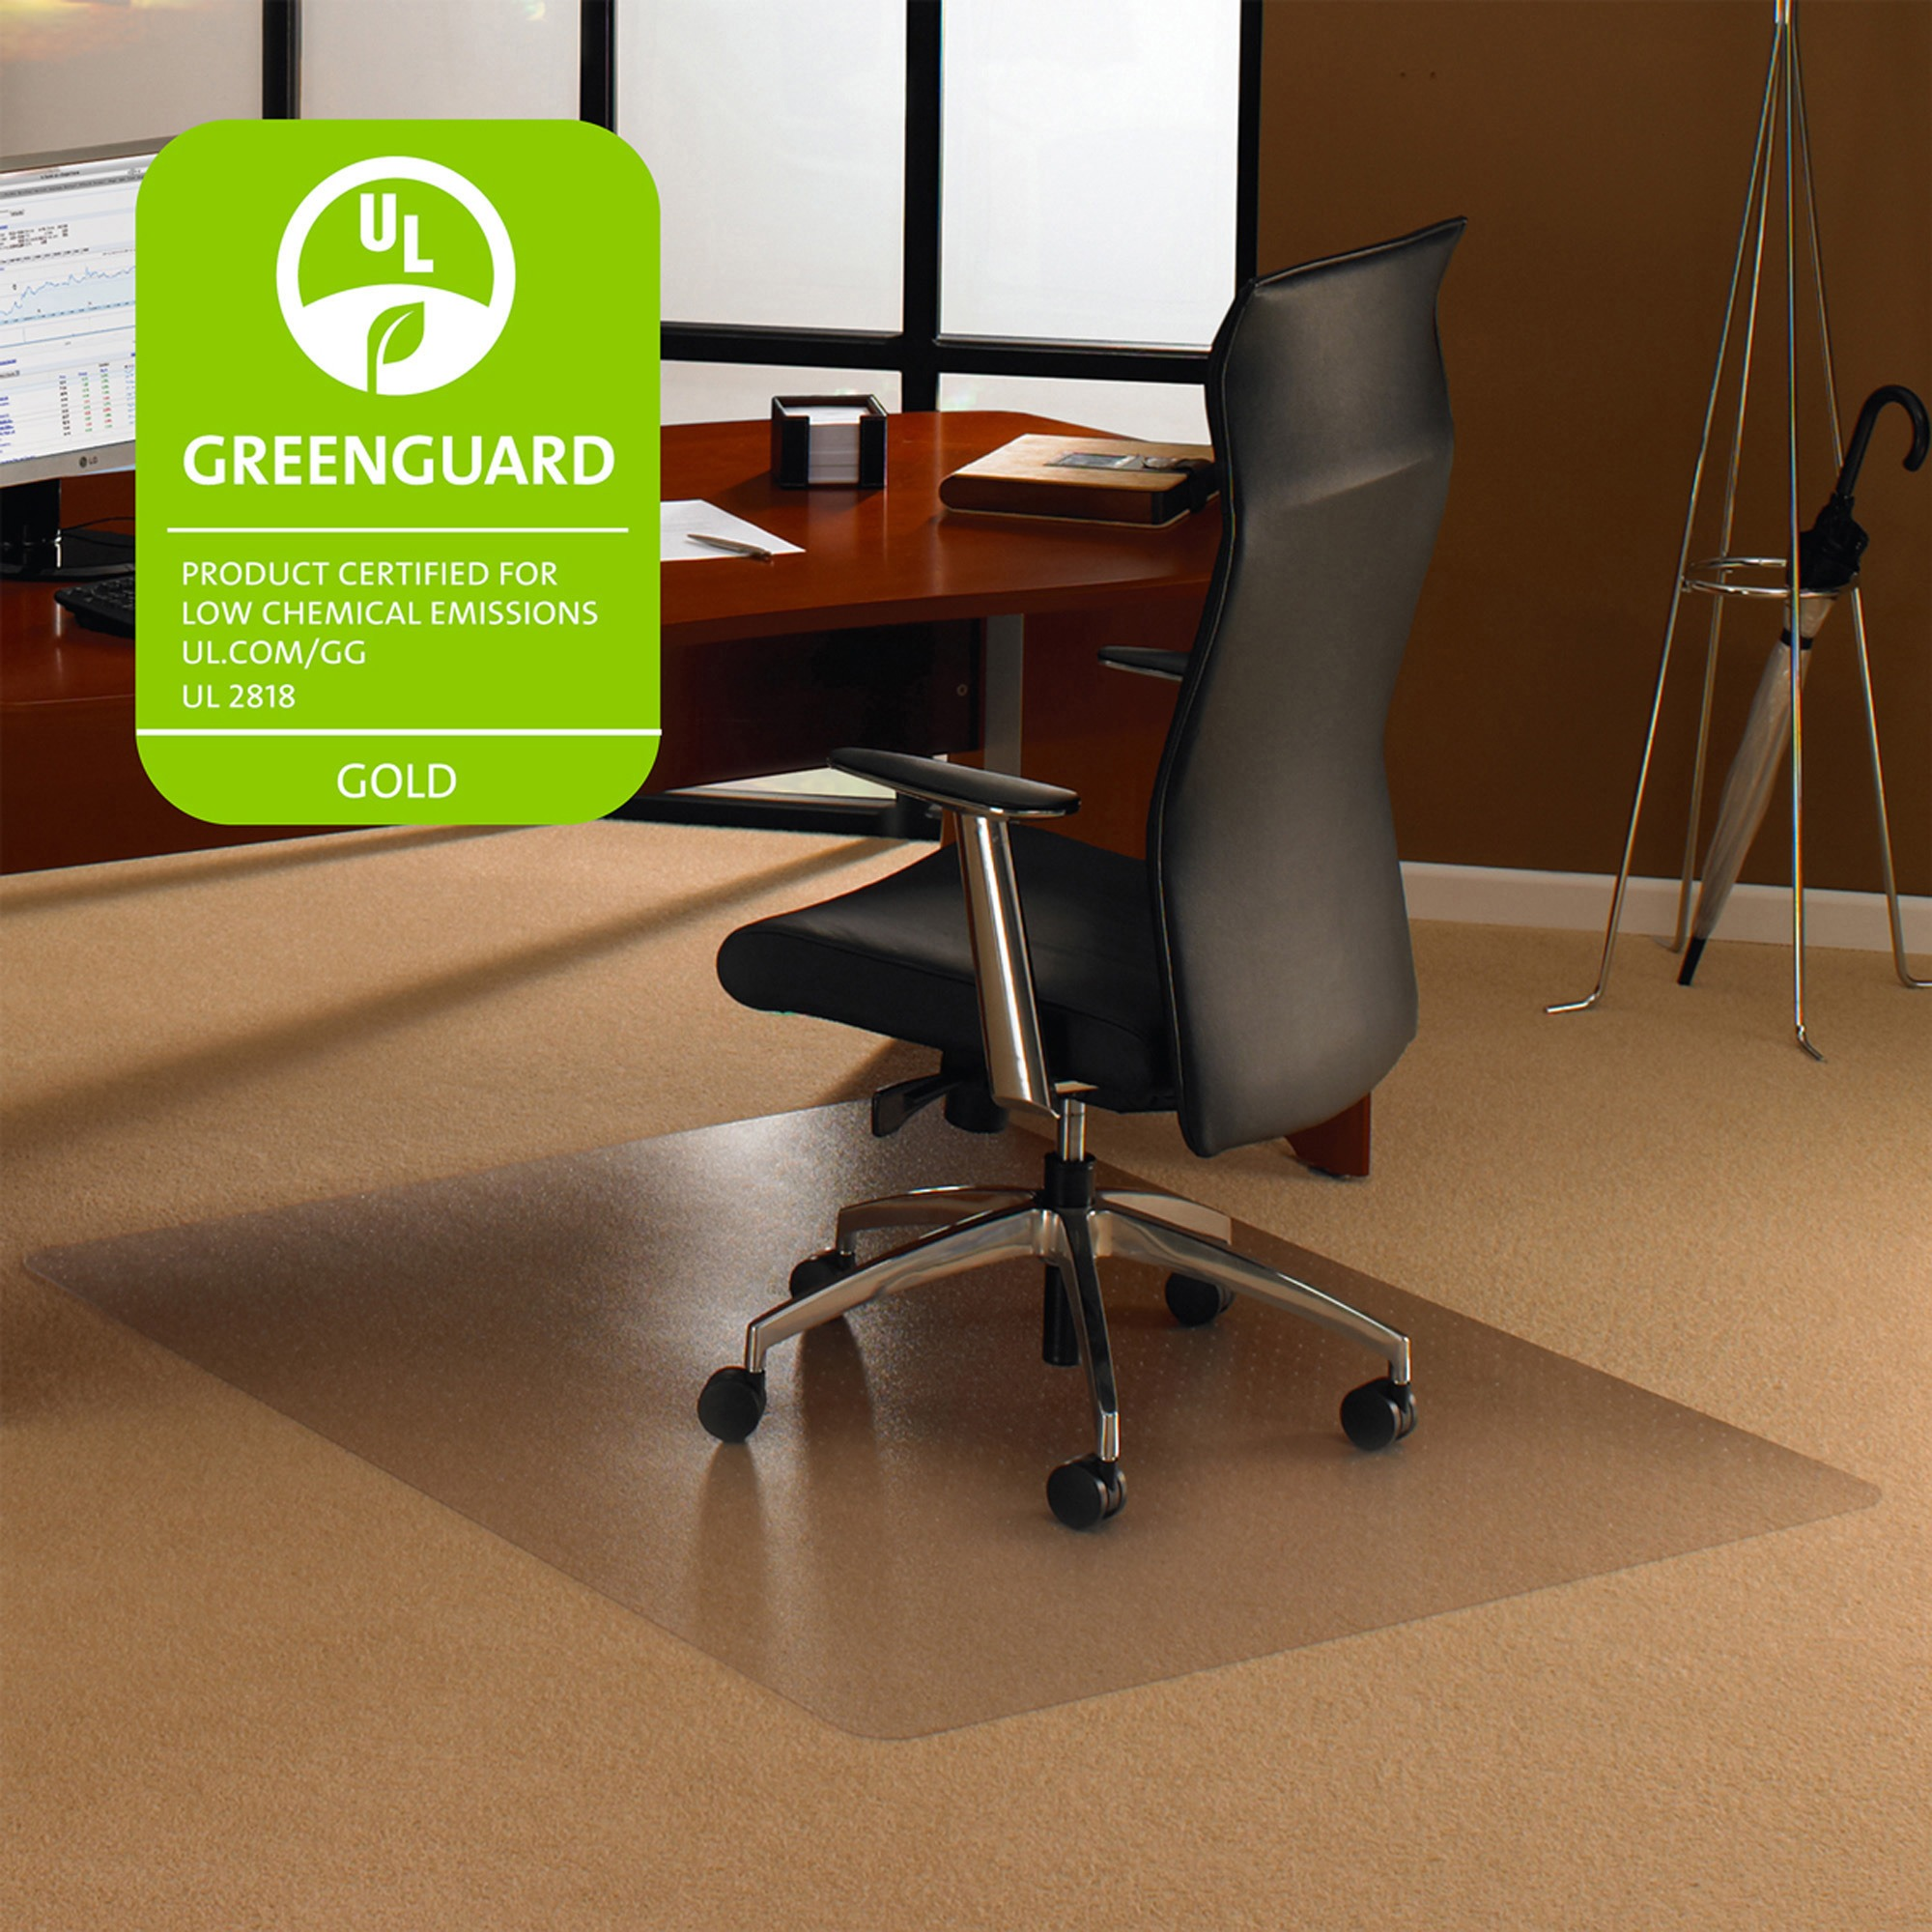 Floortex Cleartex Ultimat 35 x 47 Chair Mat for Low and Medium Pile Carpet, Rectangular